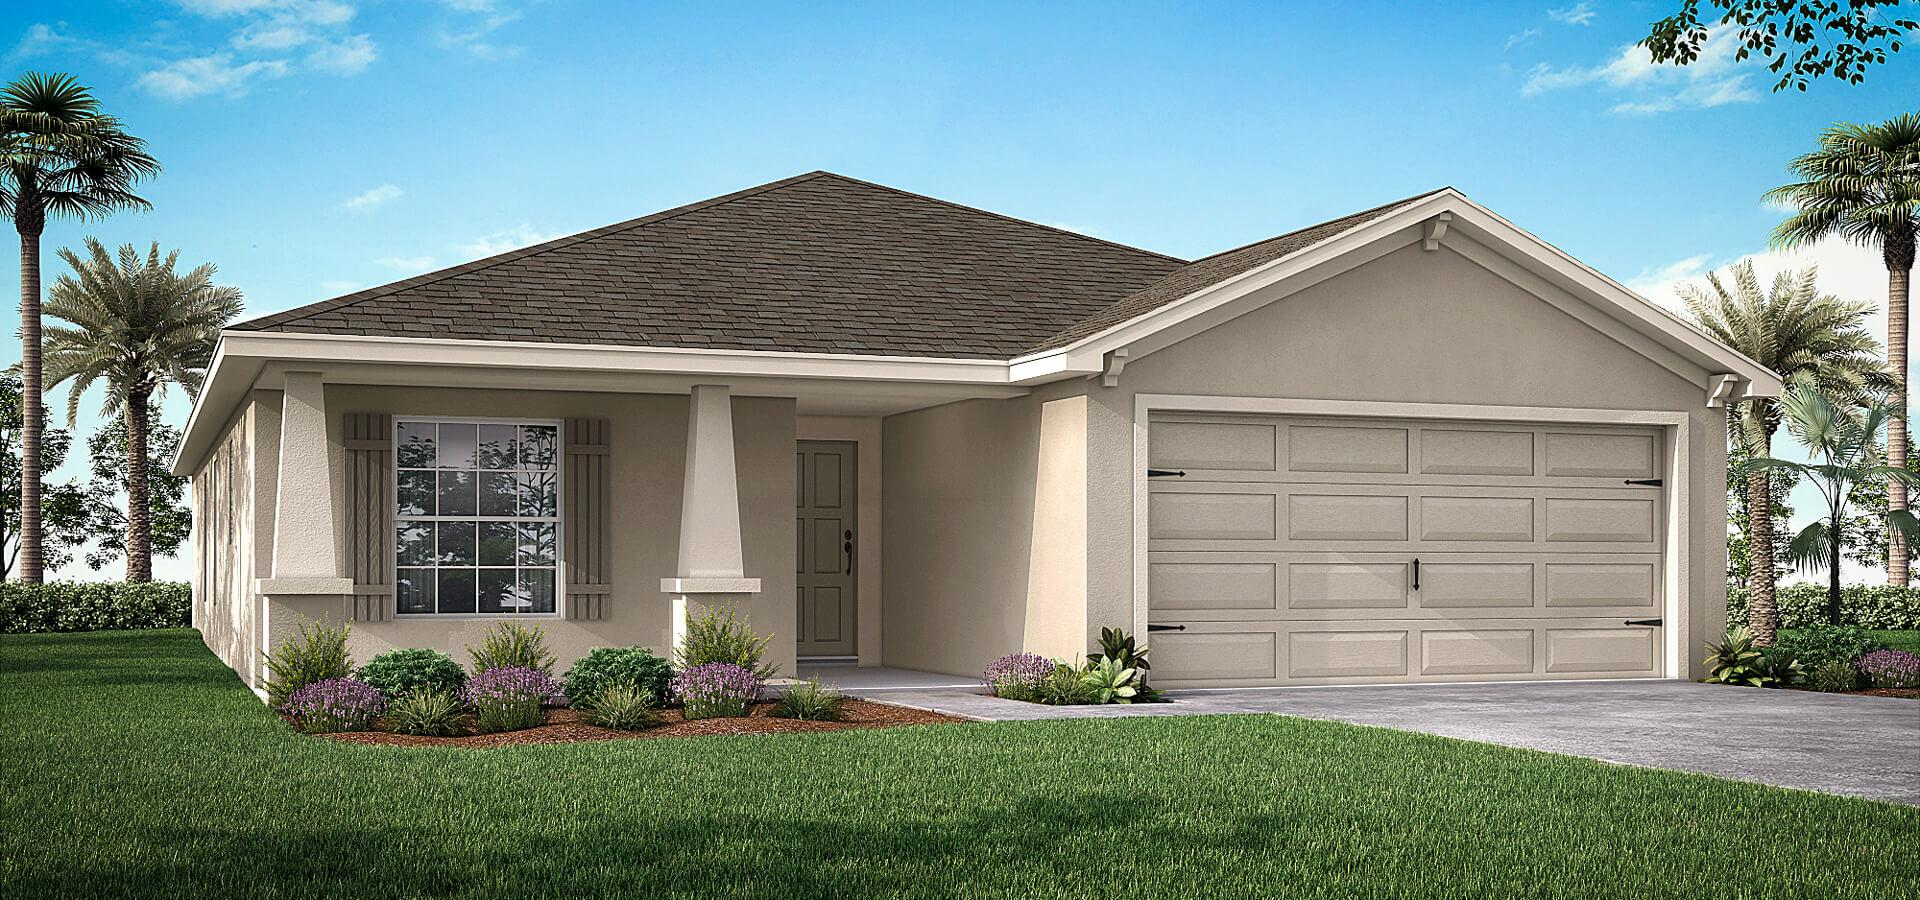 Ridgewood West New Home Community Riverview Florida